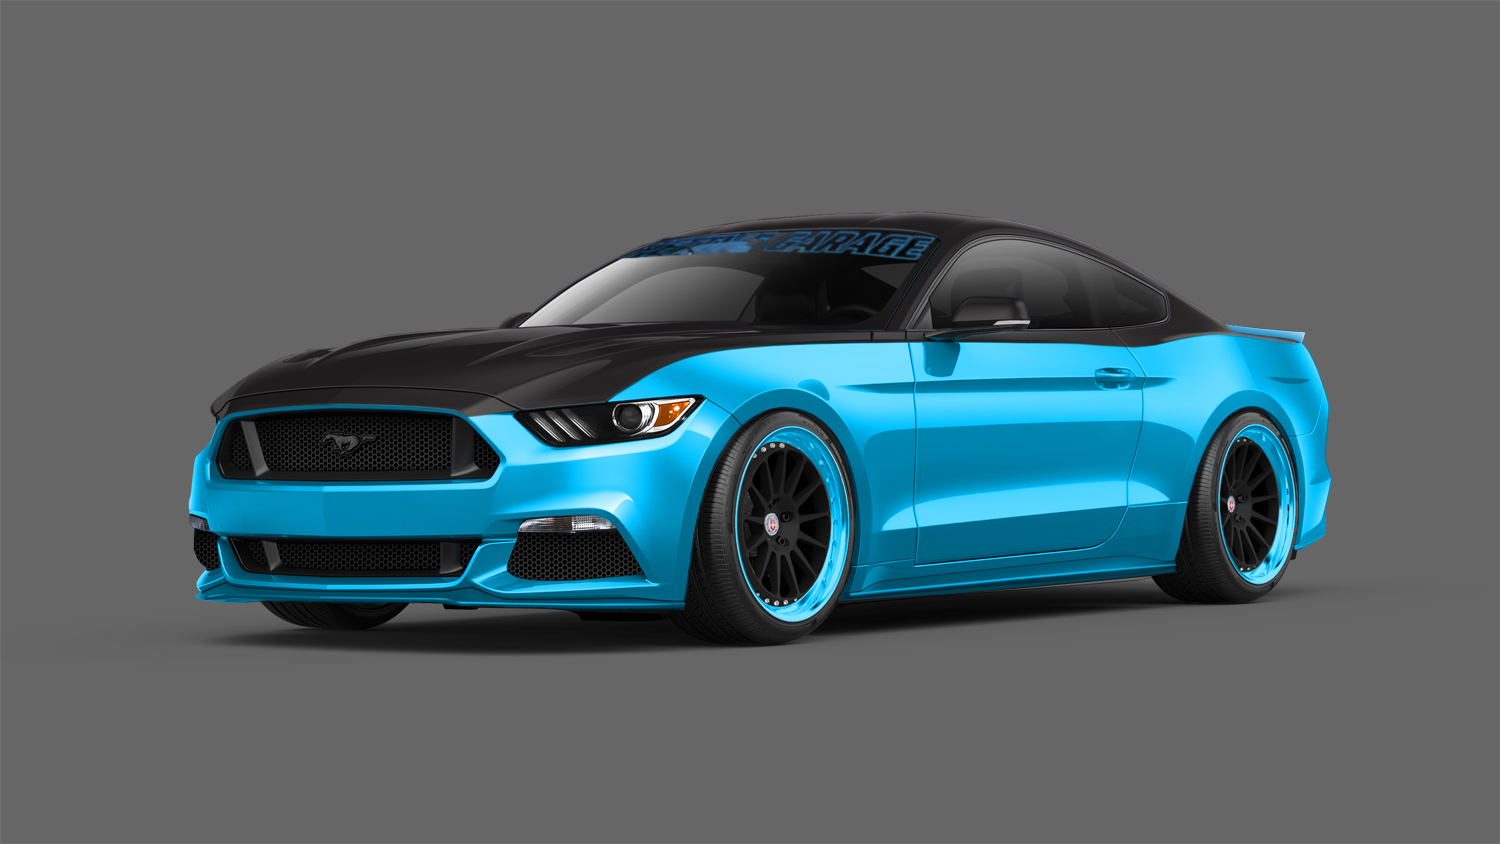 2015 ford mustang to take sema by storm with over 12 custom vehicles autoevolution. Black Bedroom Furniture Sets. Home Design Ideas